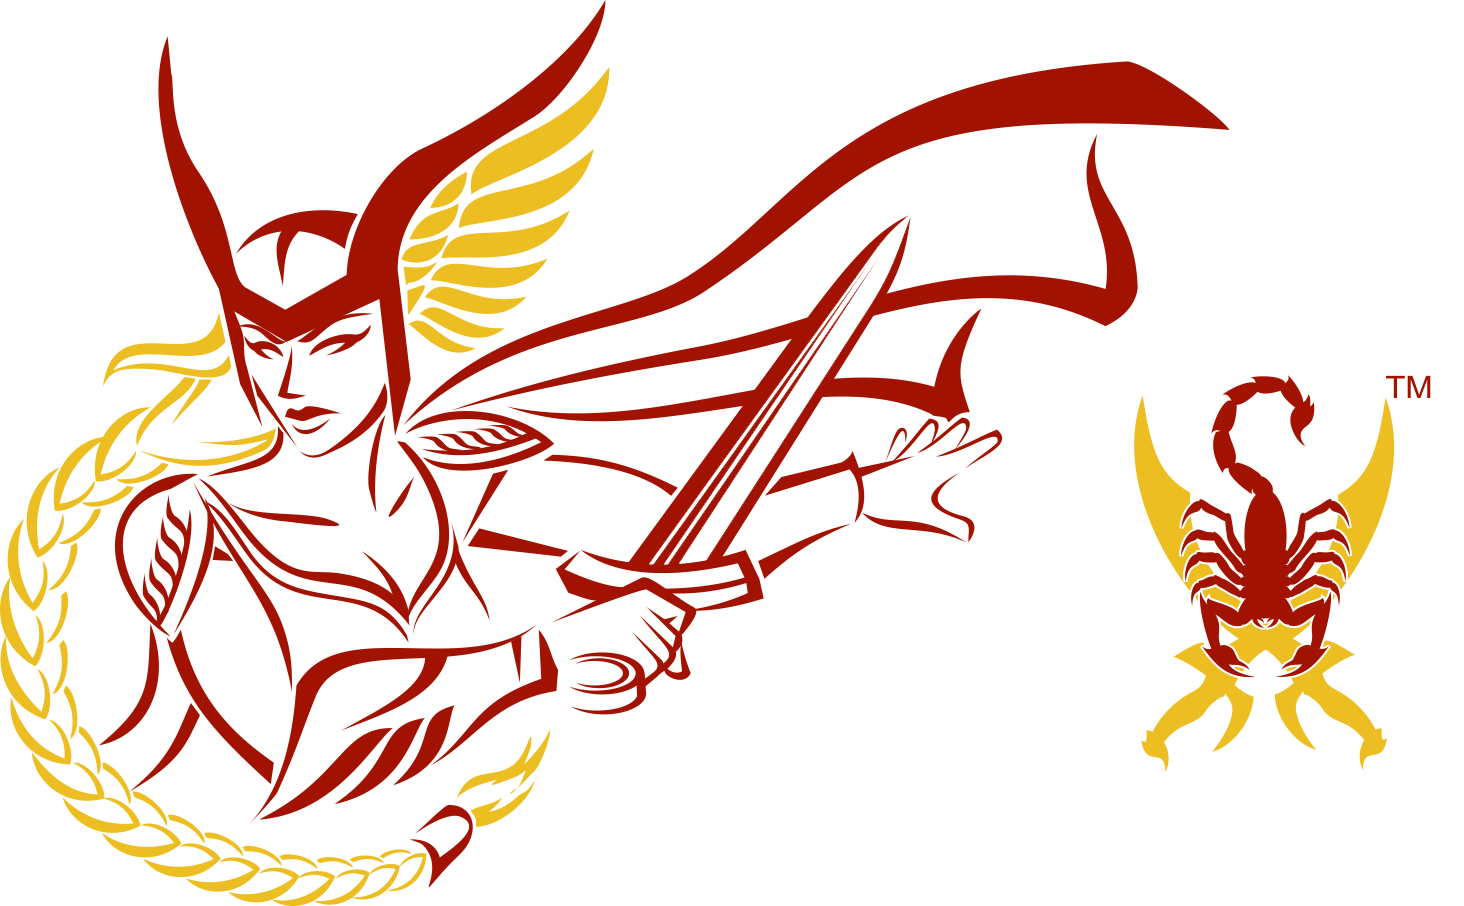 Valkyrie & Saber-Scorpion Logo Graphics (Corel Draw)